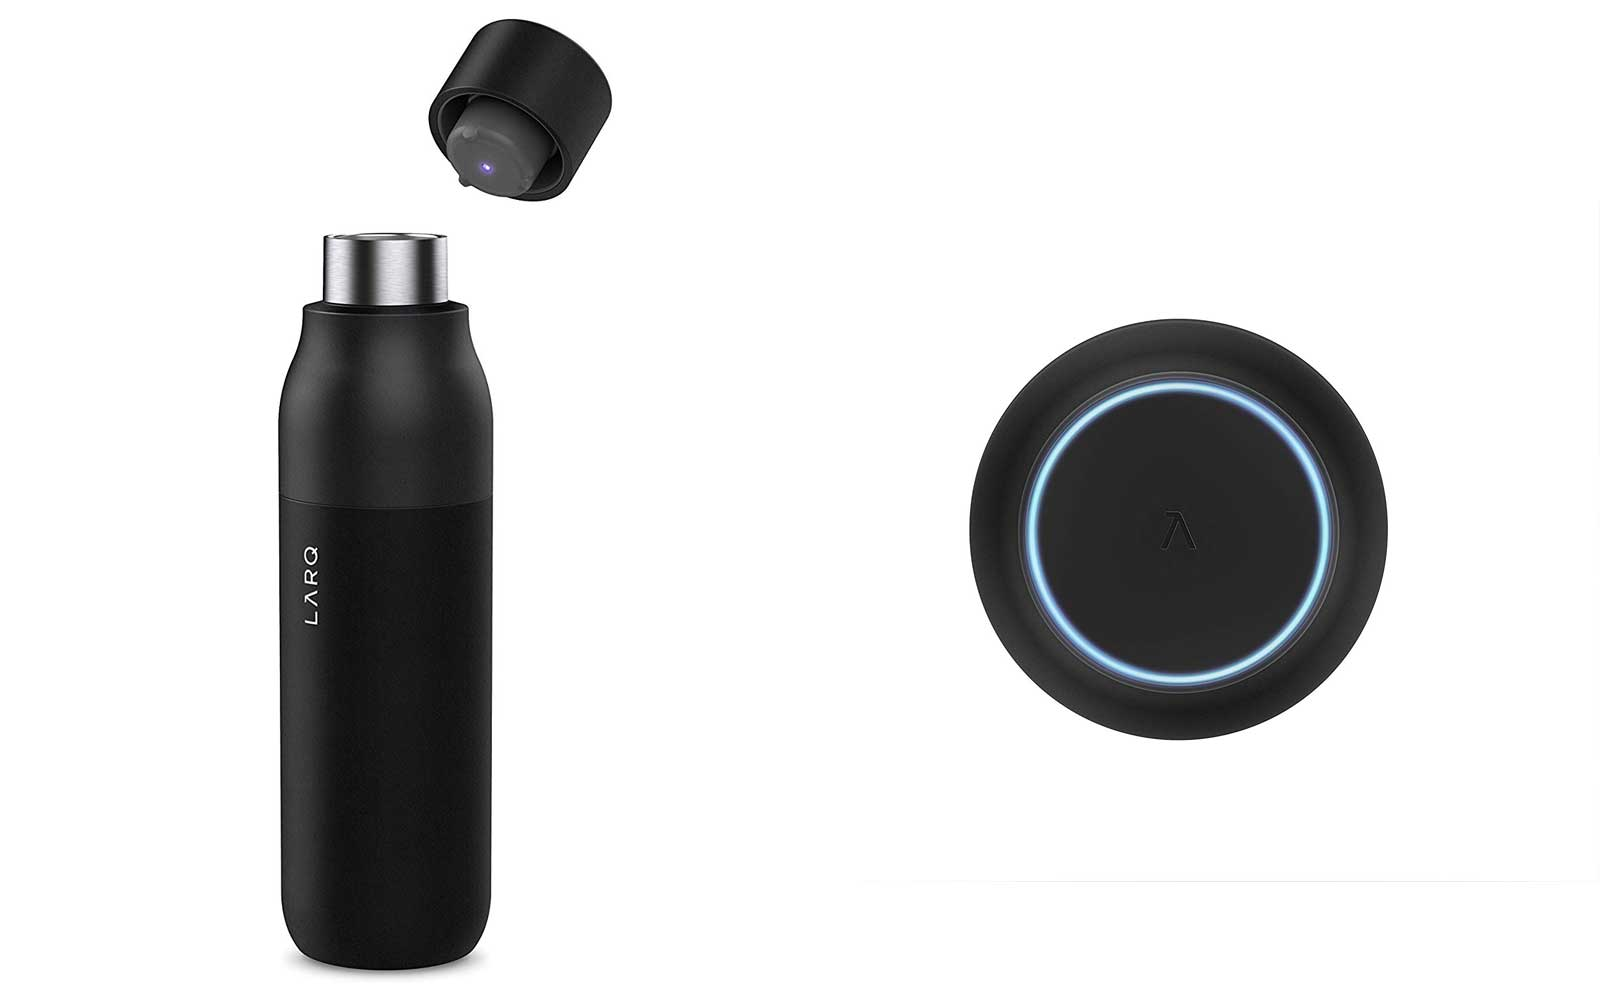 Black Reusable Water Bottle and Cap